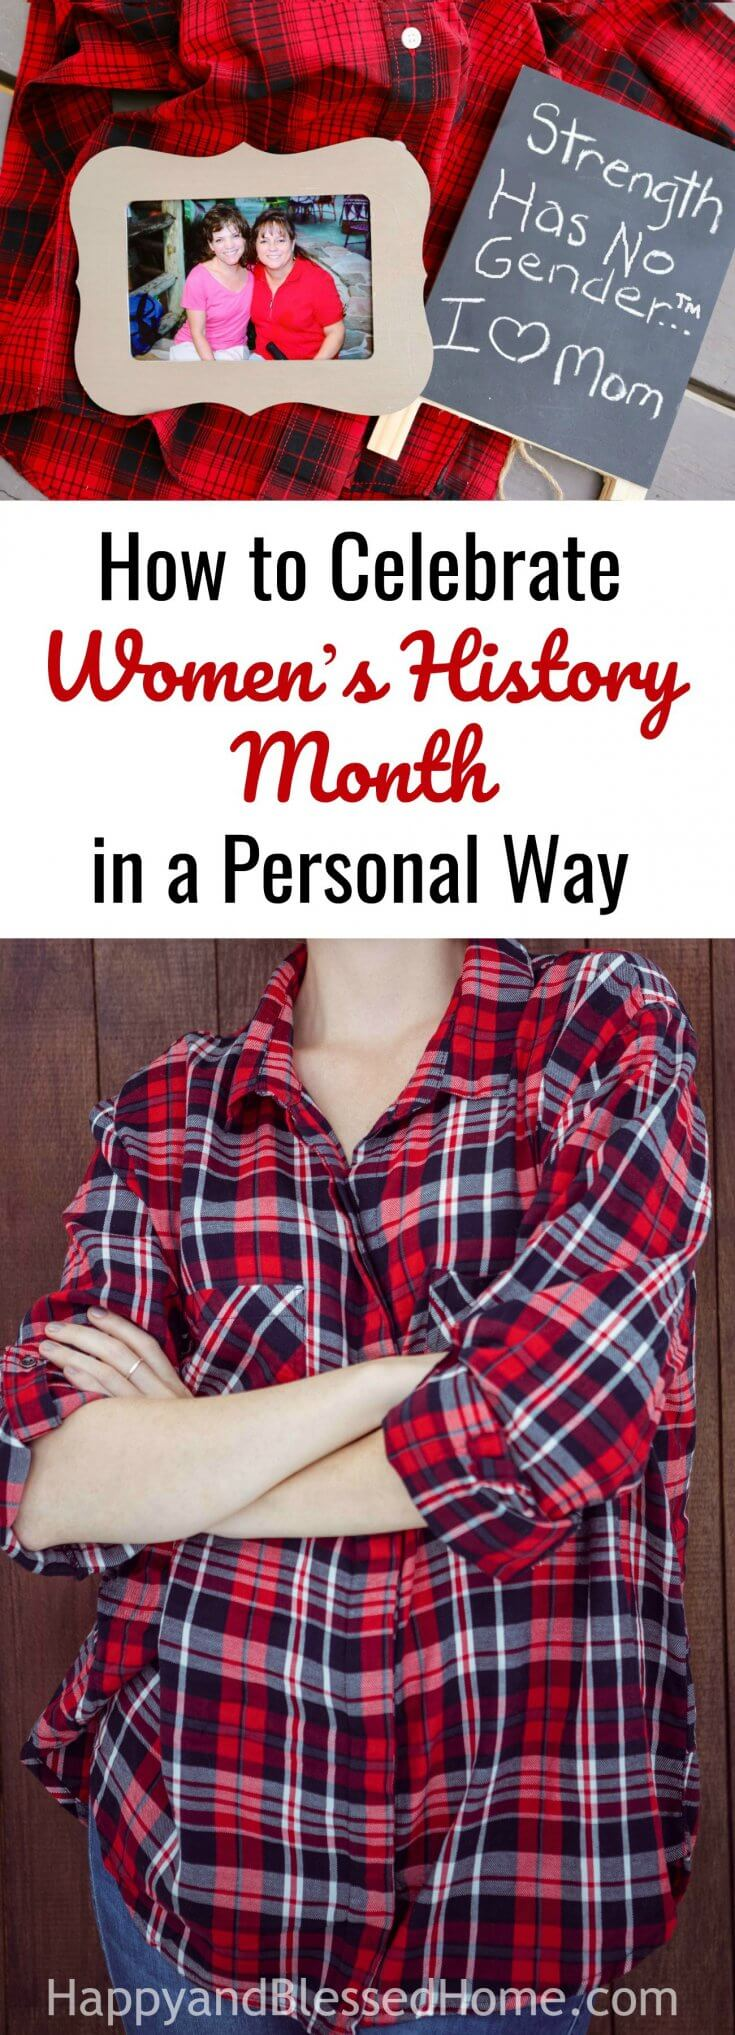 How to Celebrate Women's History Month in a Personal Way and Why my Mom is a SHEro